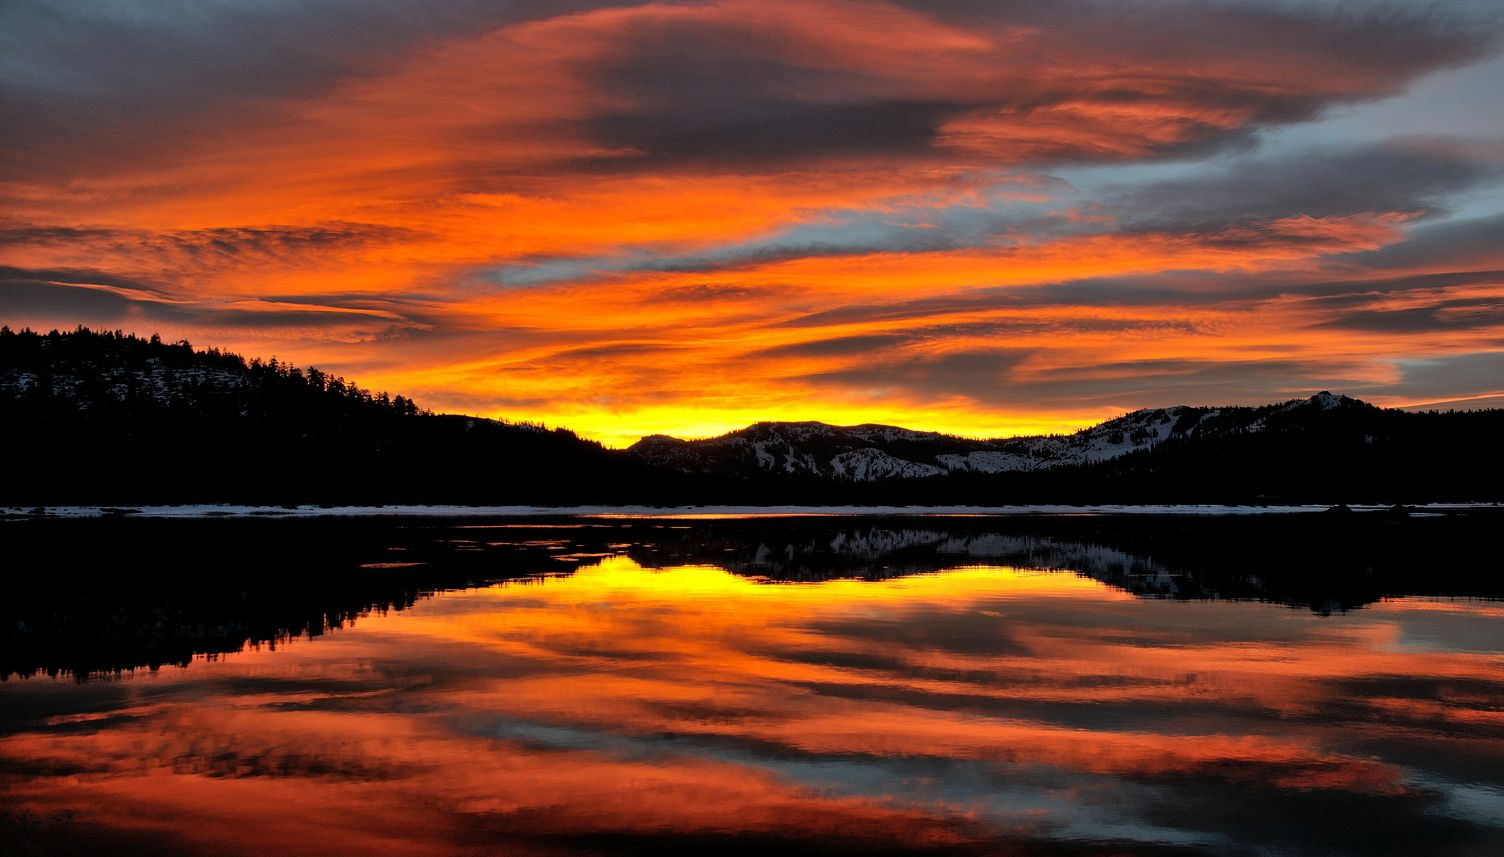 Sunrise over Van Norden Lake-02 10-31-12